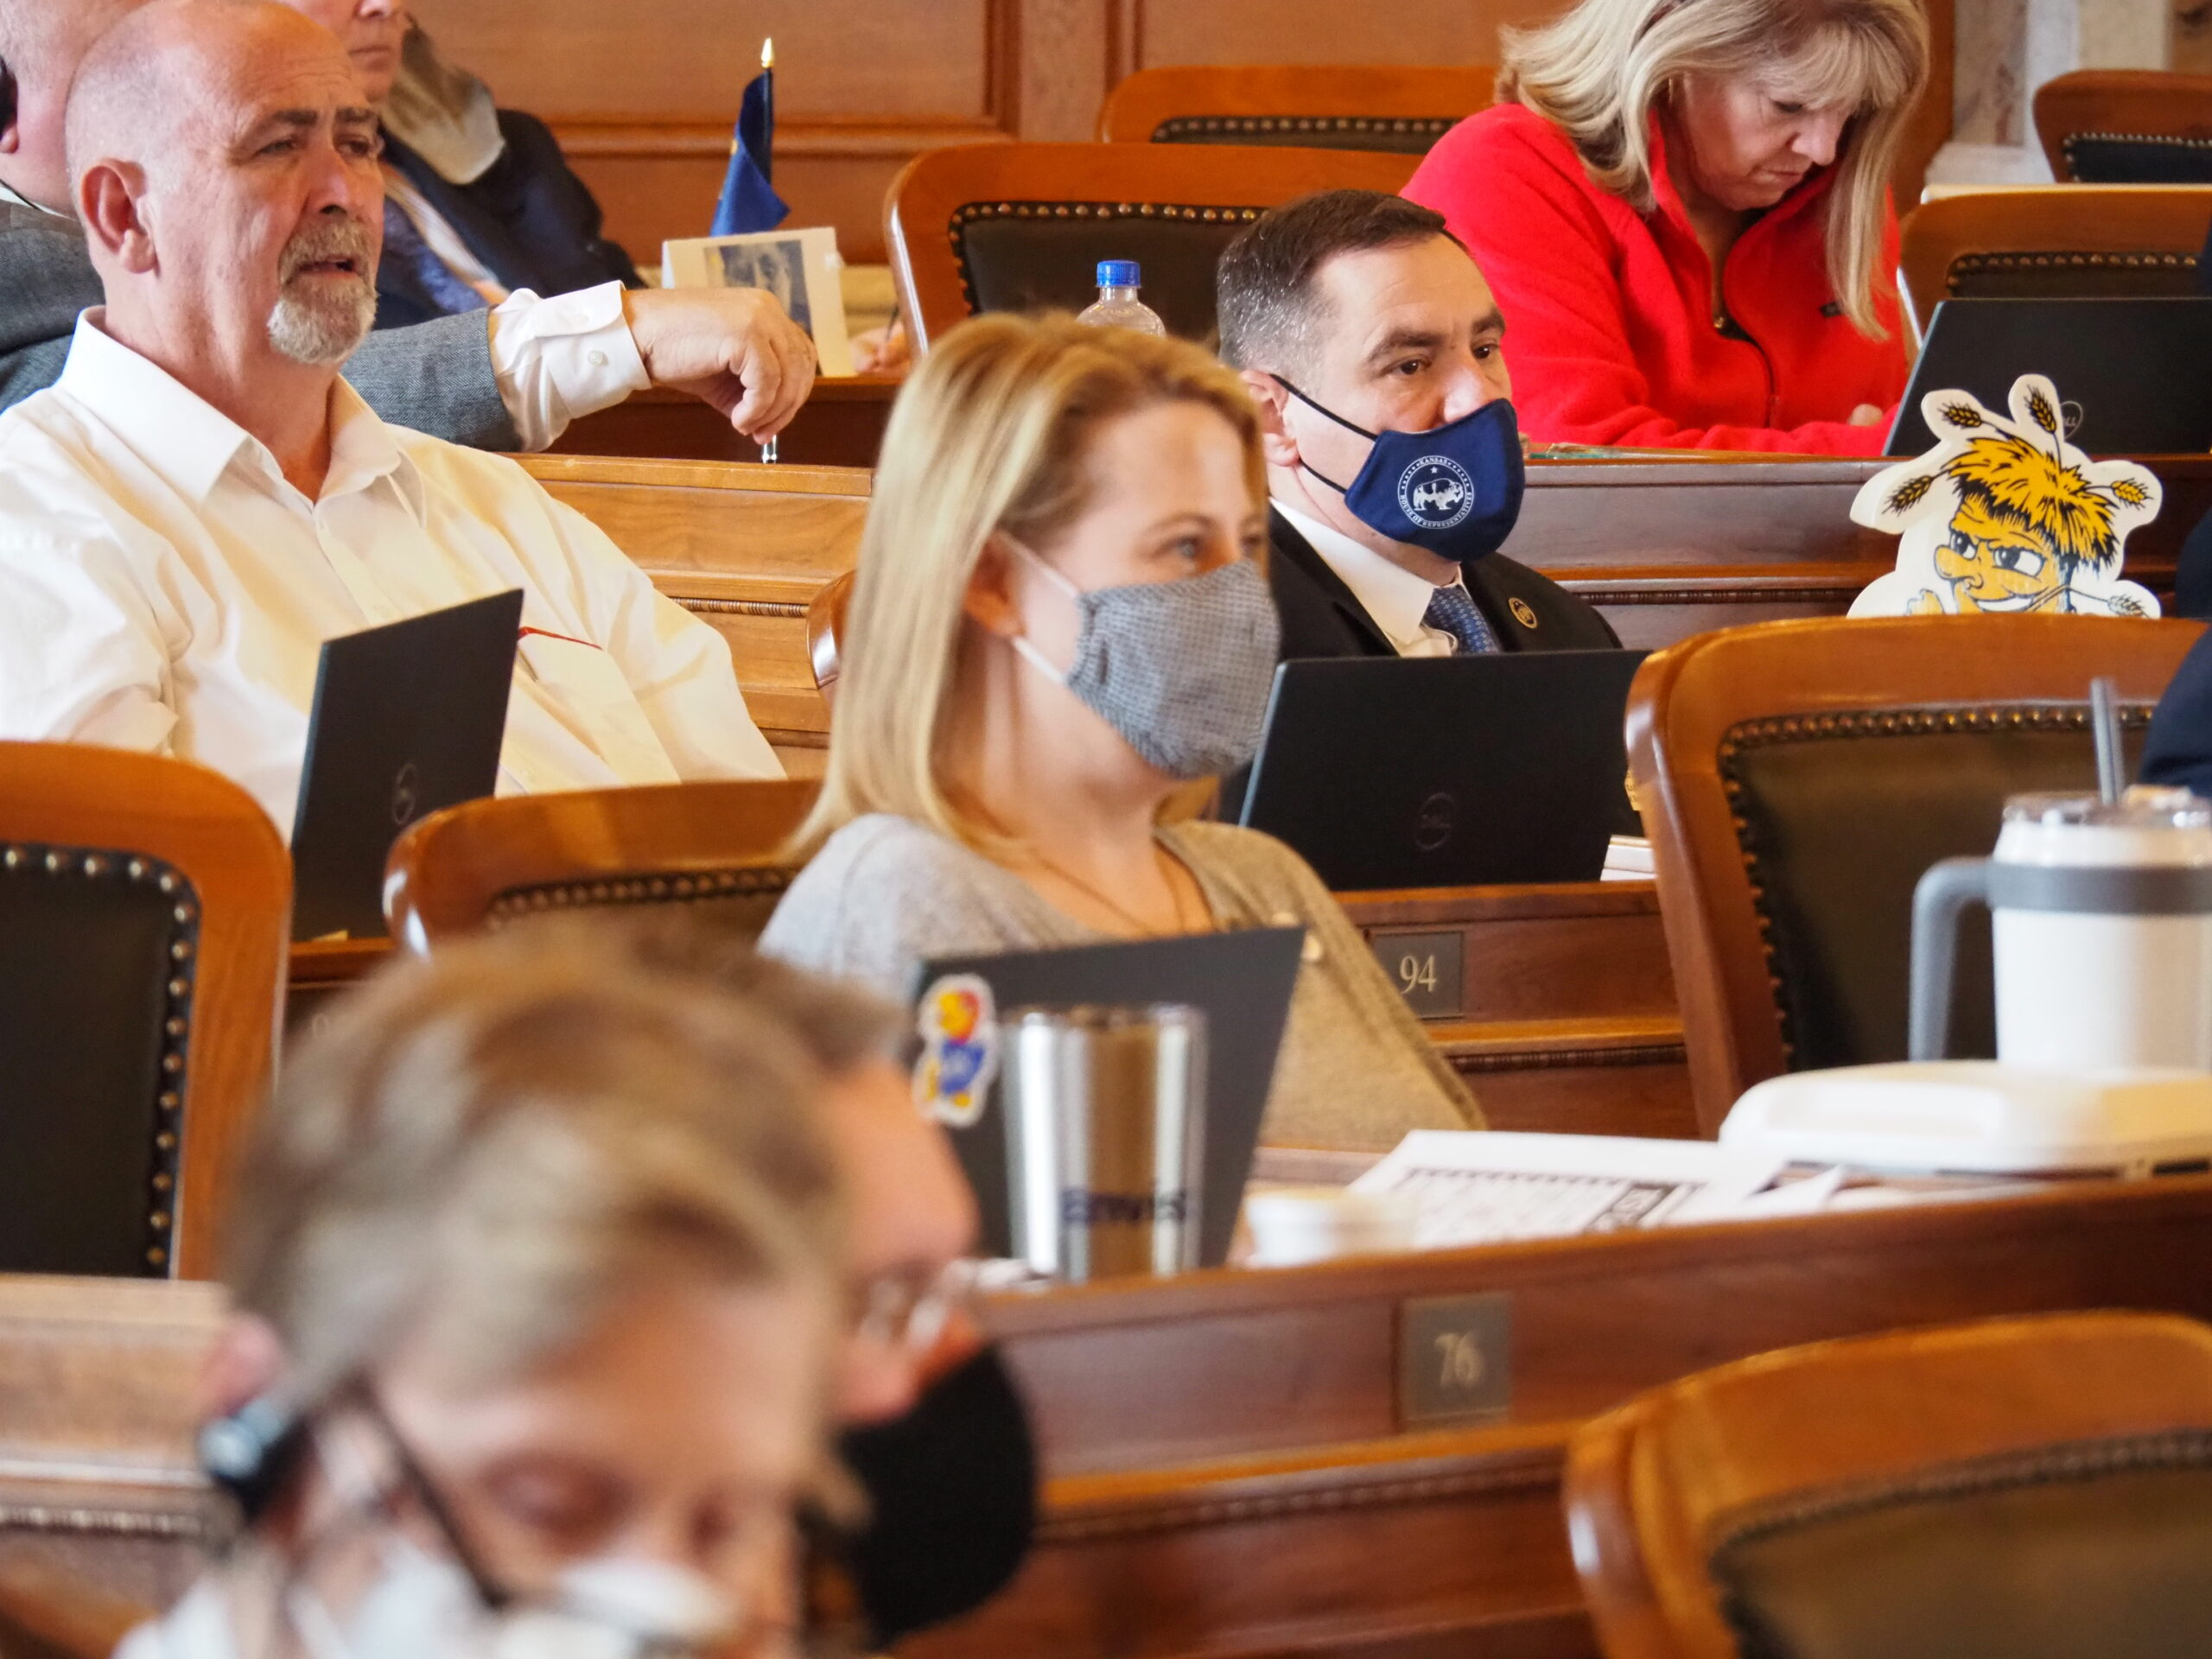 Rep. Pat Proctor, R-Leavenworth, center wearing mask, questioned a new internet sales tax but voted for the House's tax bill because Democratic Gov. Laura Kelly damaged the economy through the pandemic. (Tim Carpenter/Kansas Reflector)